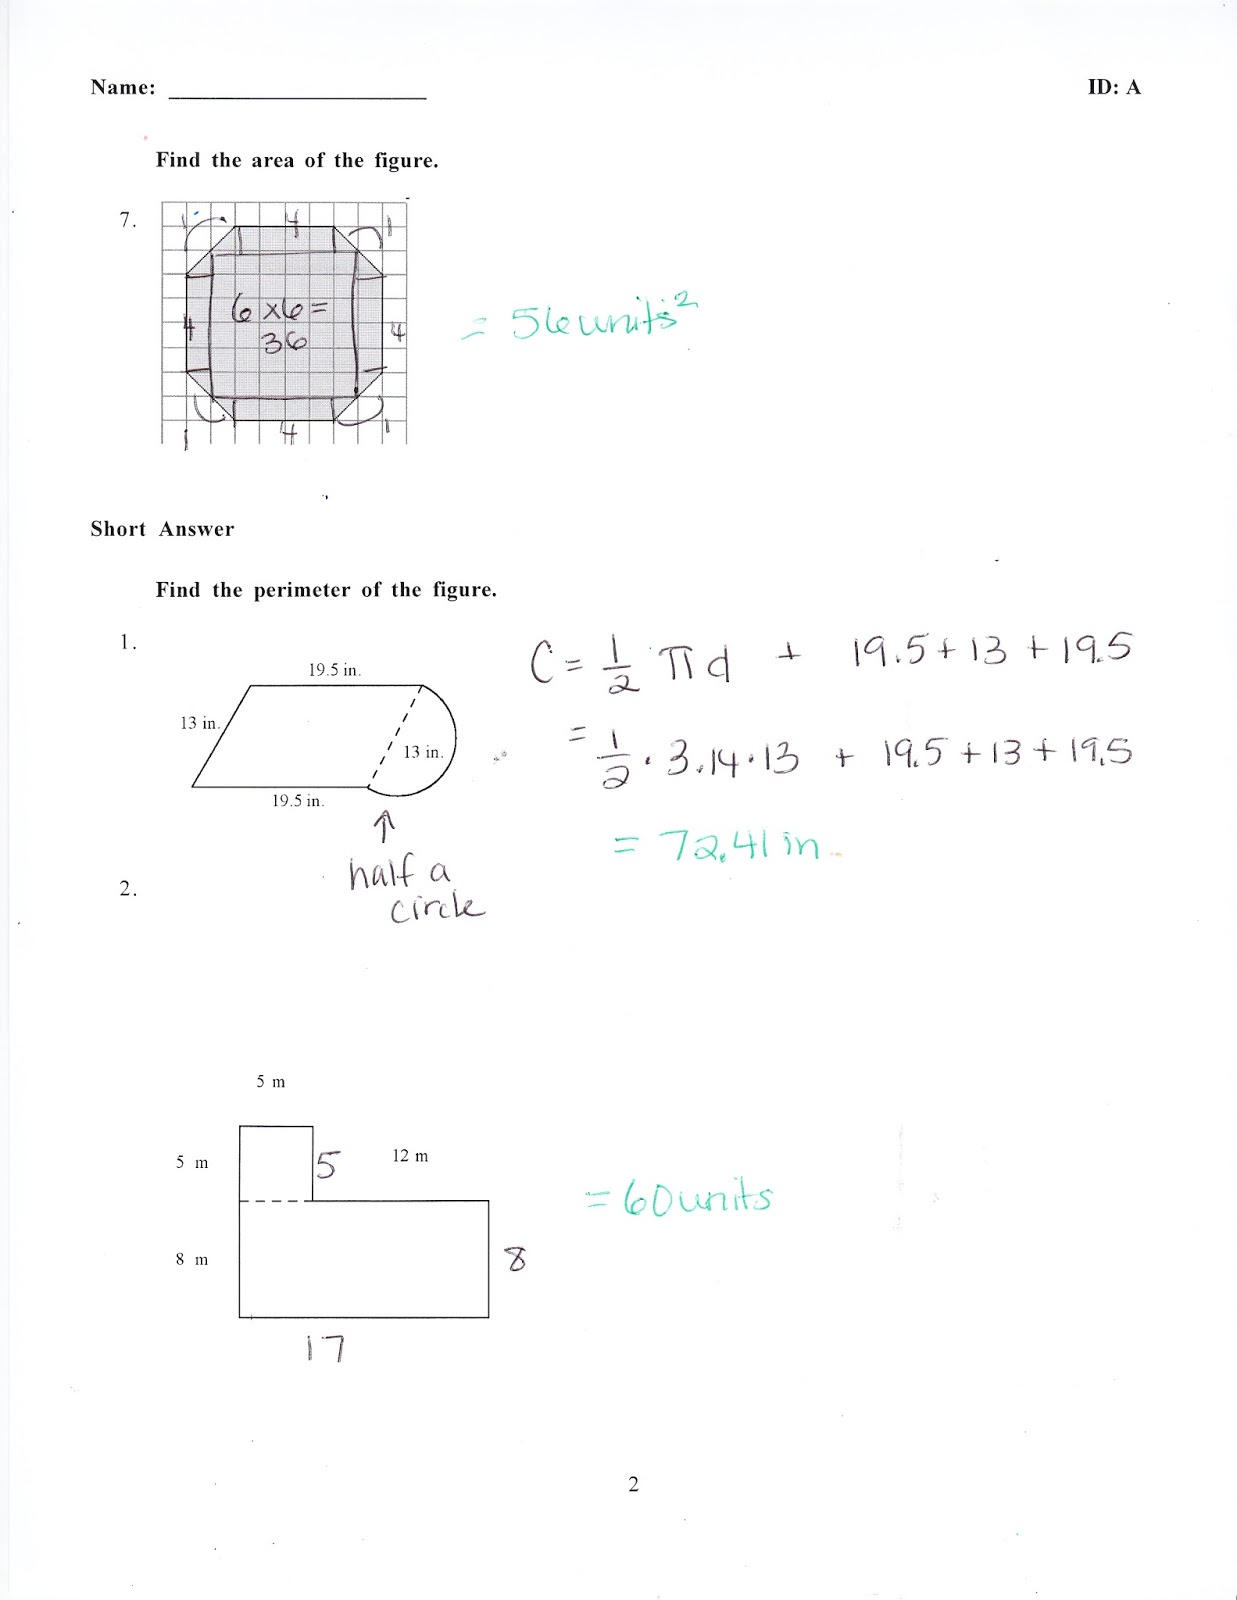 Ms  Jean's Classroom Blog: Math 7 Chapter 8 Practice Test Answers